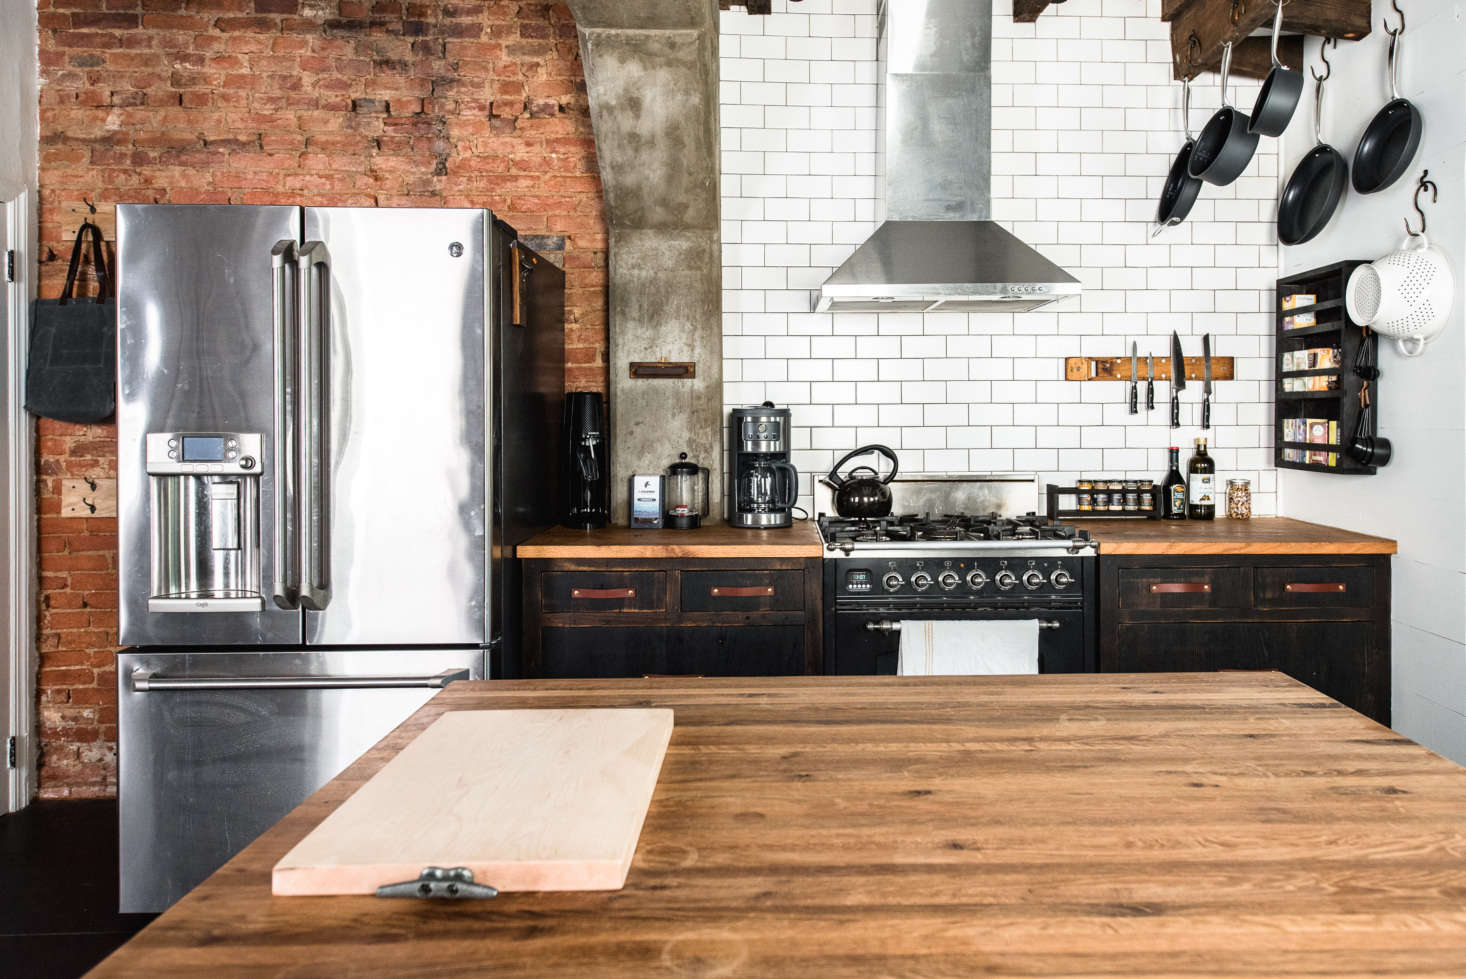 As a counterpoint to the patinated surfaces, they installed industrial-style appliances, including a GE fridge and Ilve gas range. The 3-by-6-inch subway tile is Daltile from a local supplier, but they point out, is also available at Home Depot. &#8